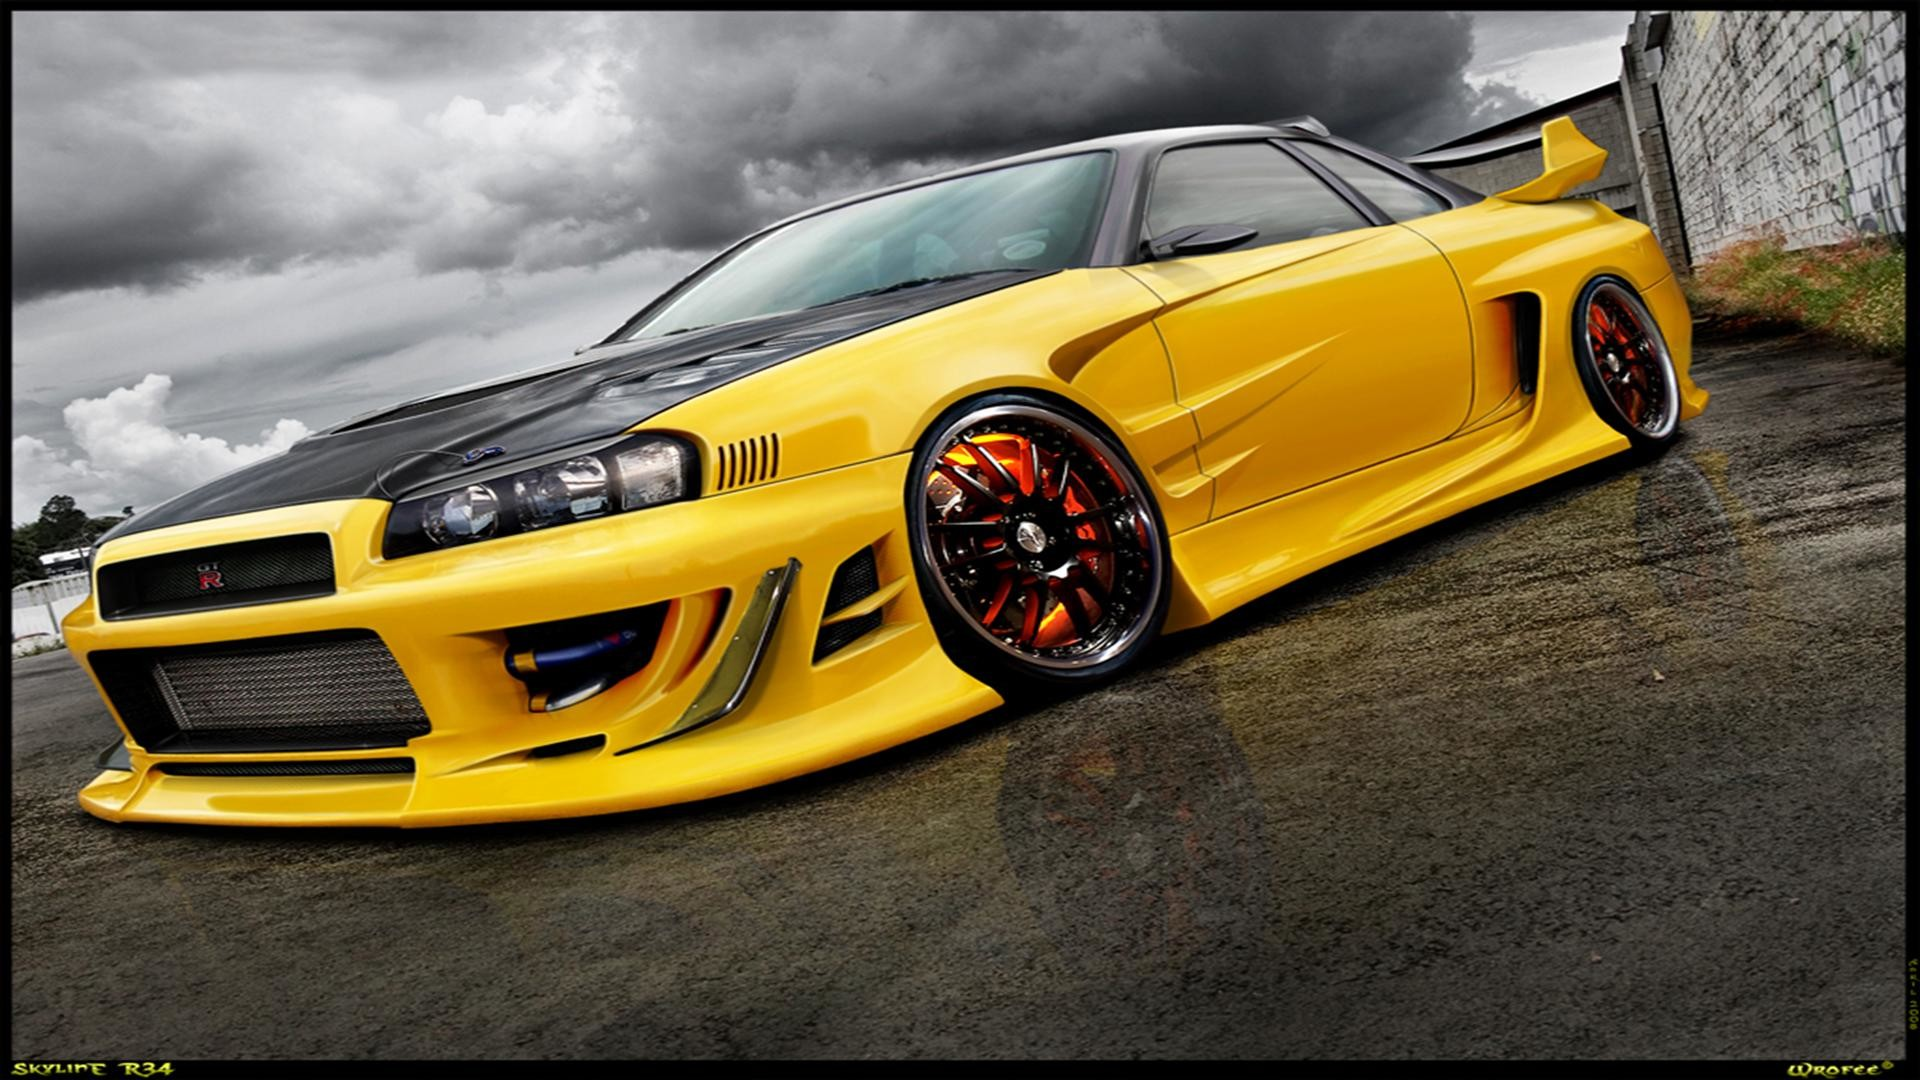 Fast And Furious 4 Cars Wallpapers Nissan Skyline Gt R R34 Wallpapers 70 Images